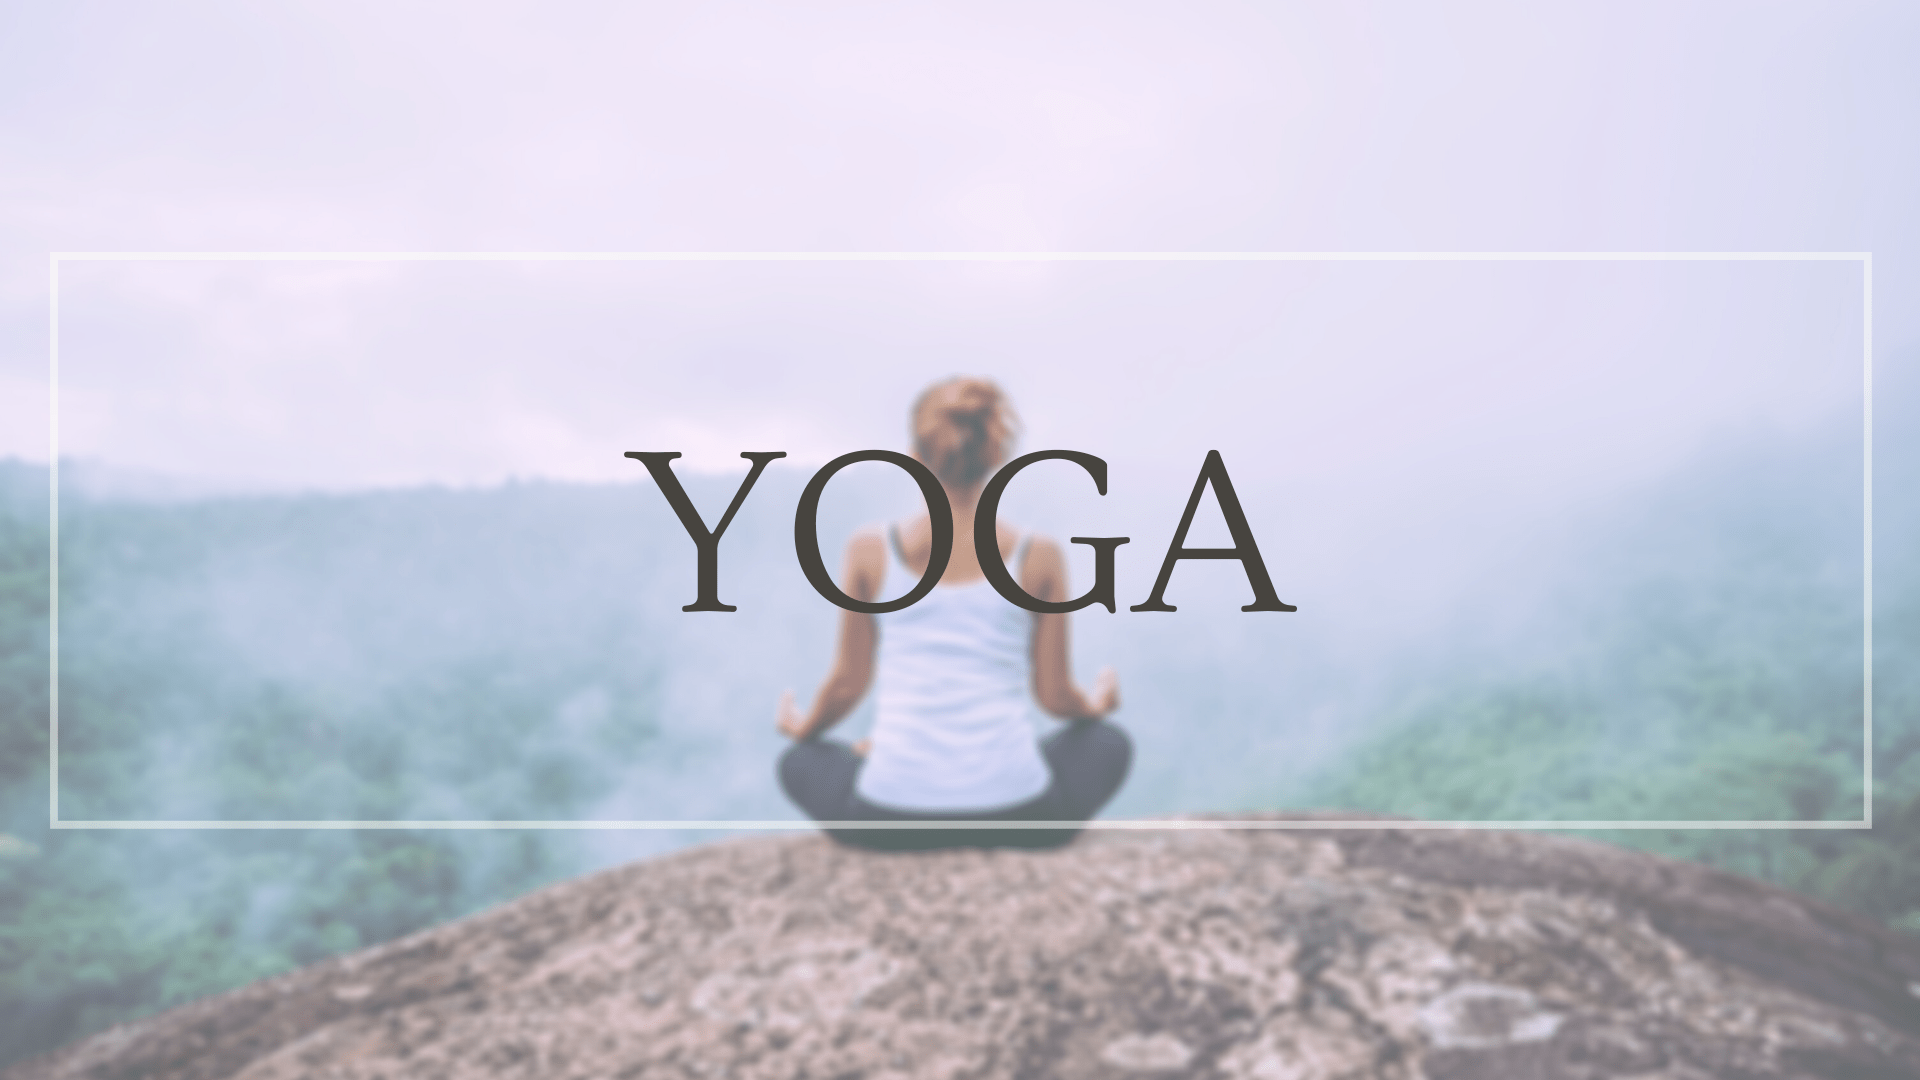 Yoga as a tool to maintain and improve mental and physical health and full fitness